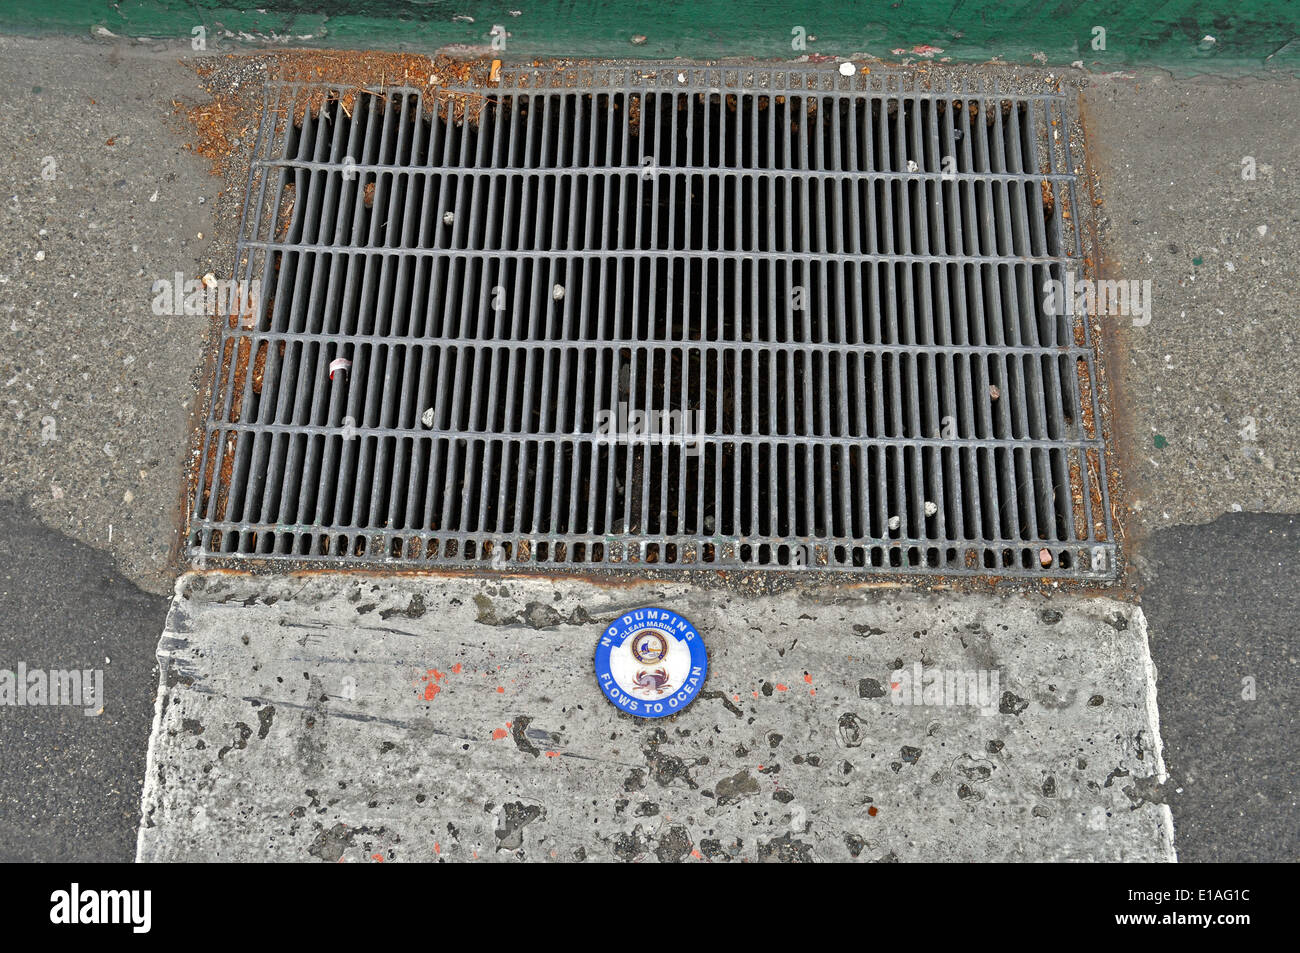 "Storm drain ""No Dumping Flows to Ocean"" sign Stock Photo"